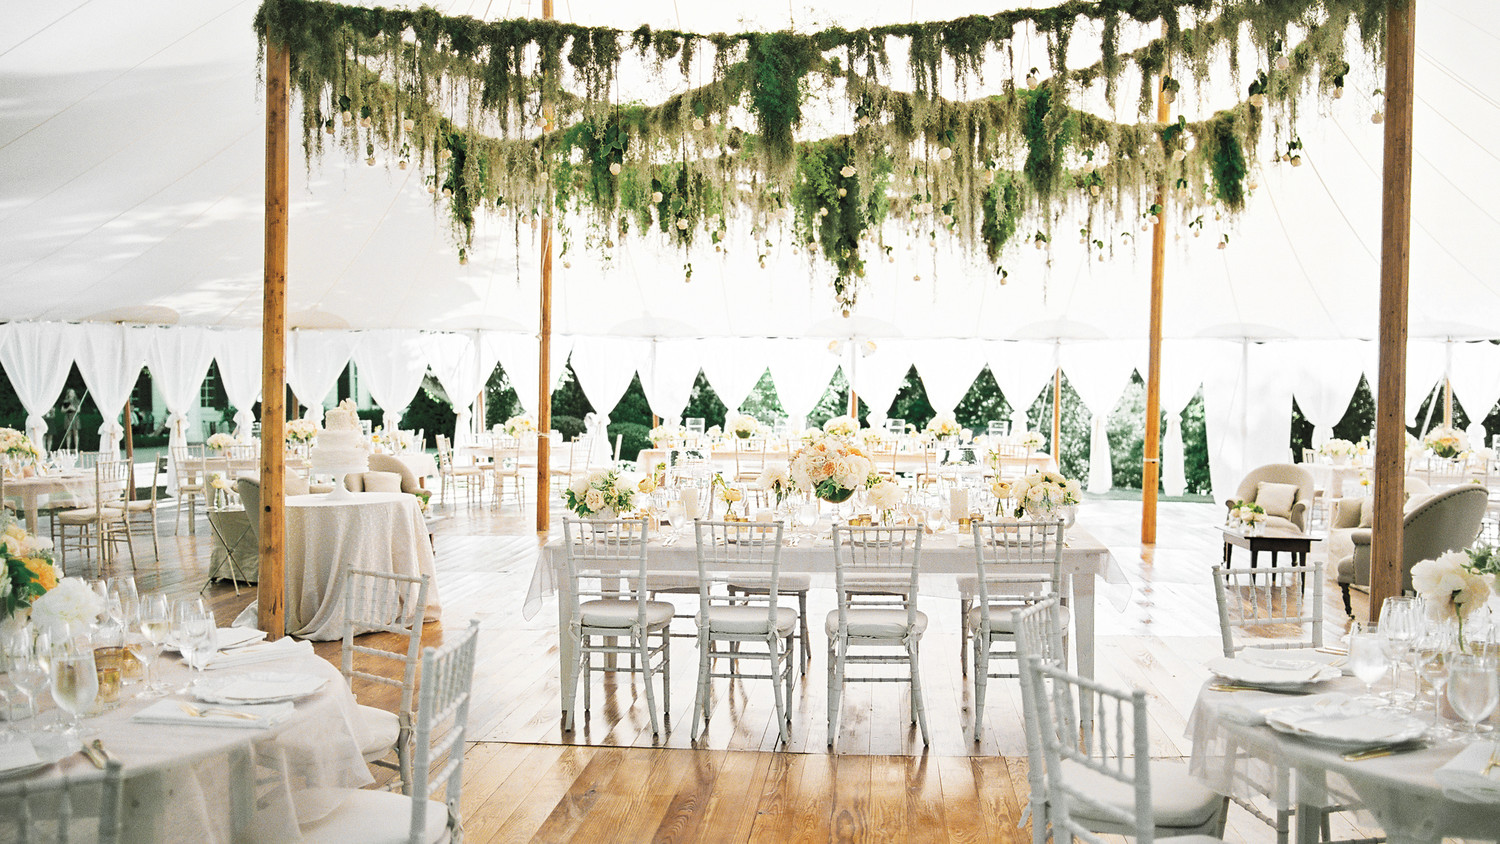 28 tent decorating ideas that will upgrade your wedding reception martha stewart weddings - Engagement party decoration ideas home property ...